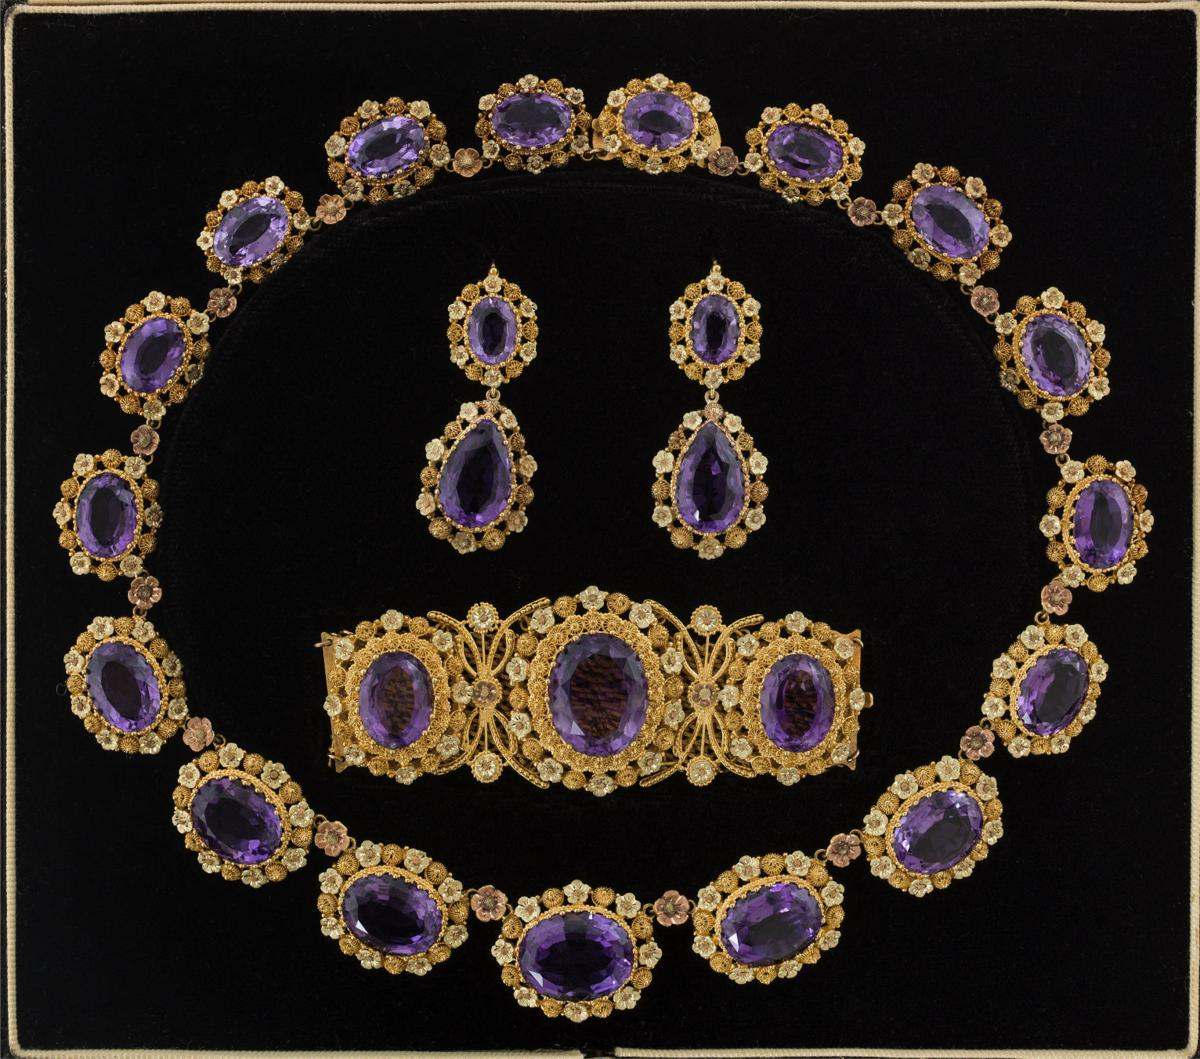 French Jewelry from the Petit Palais, Paris